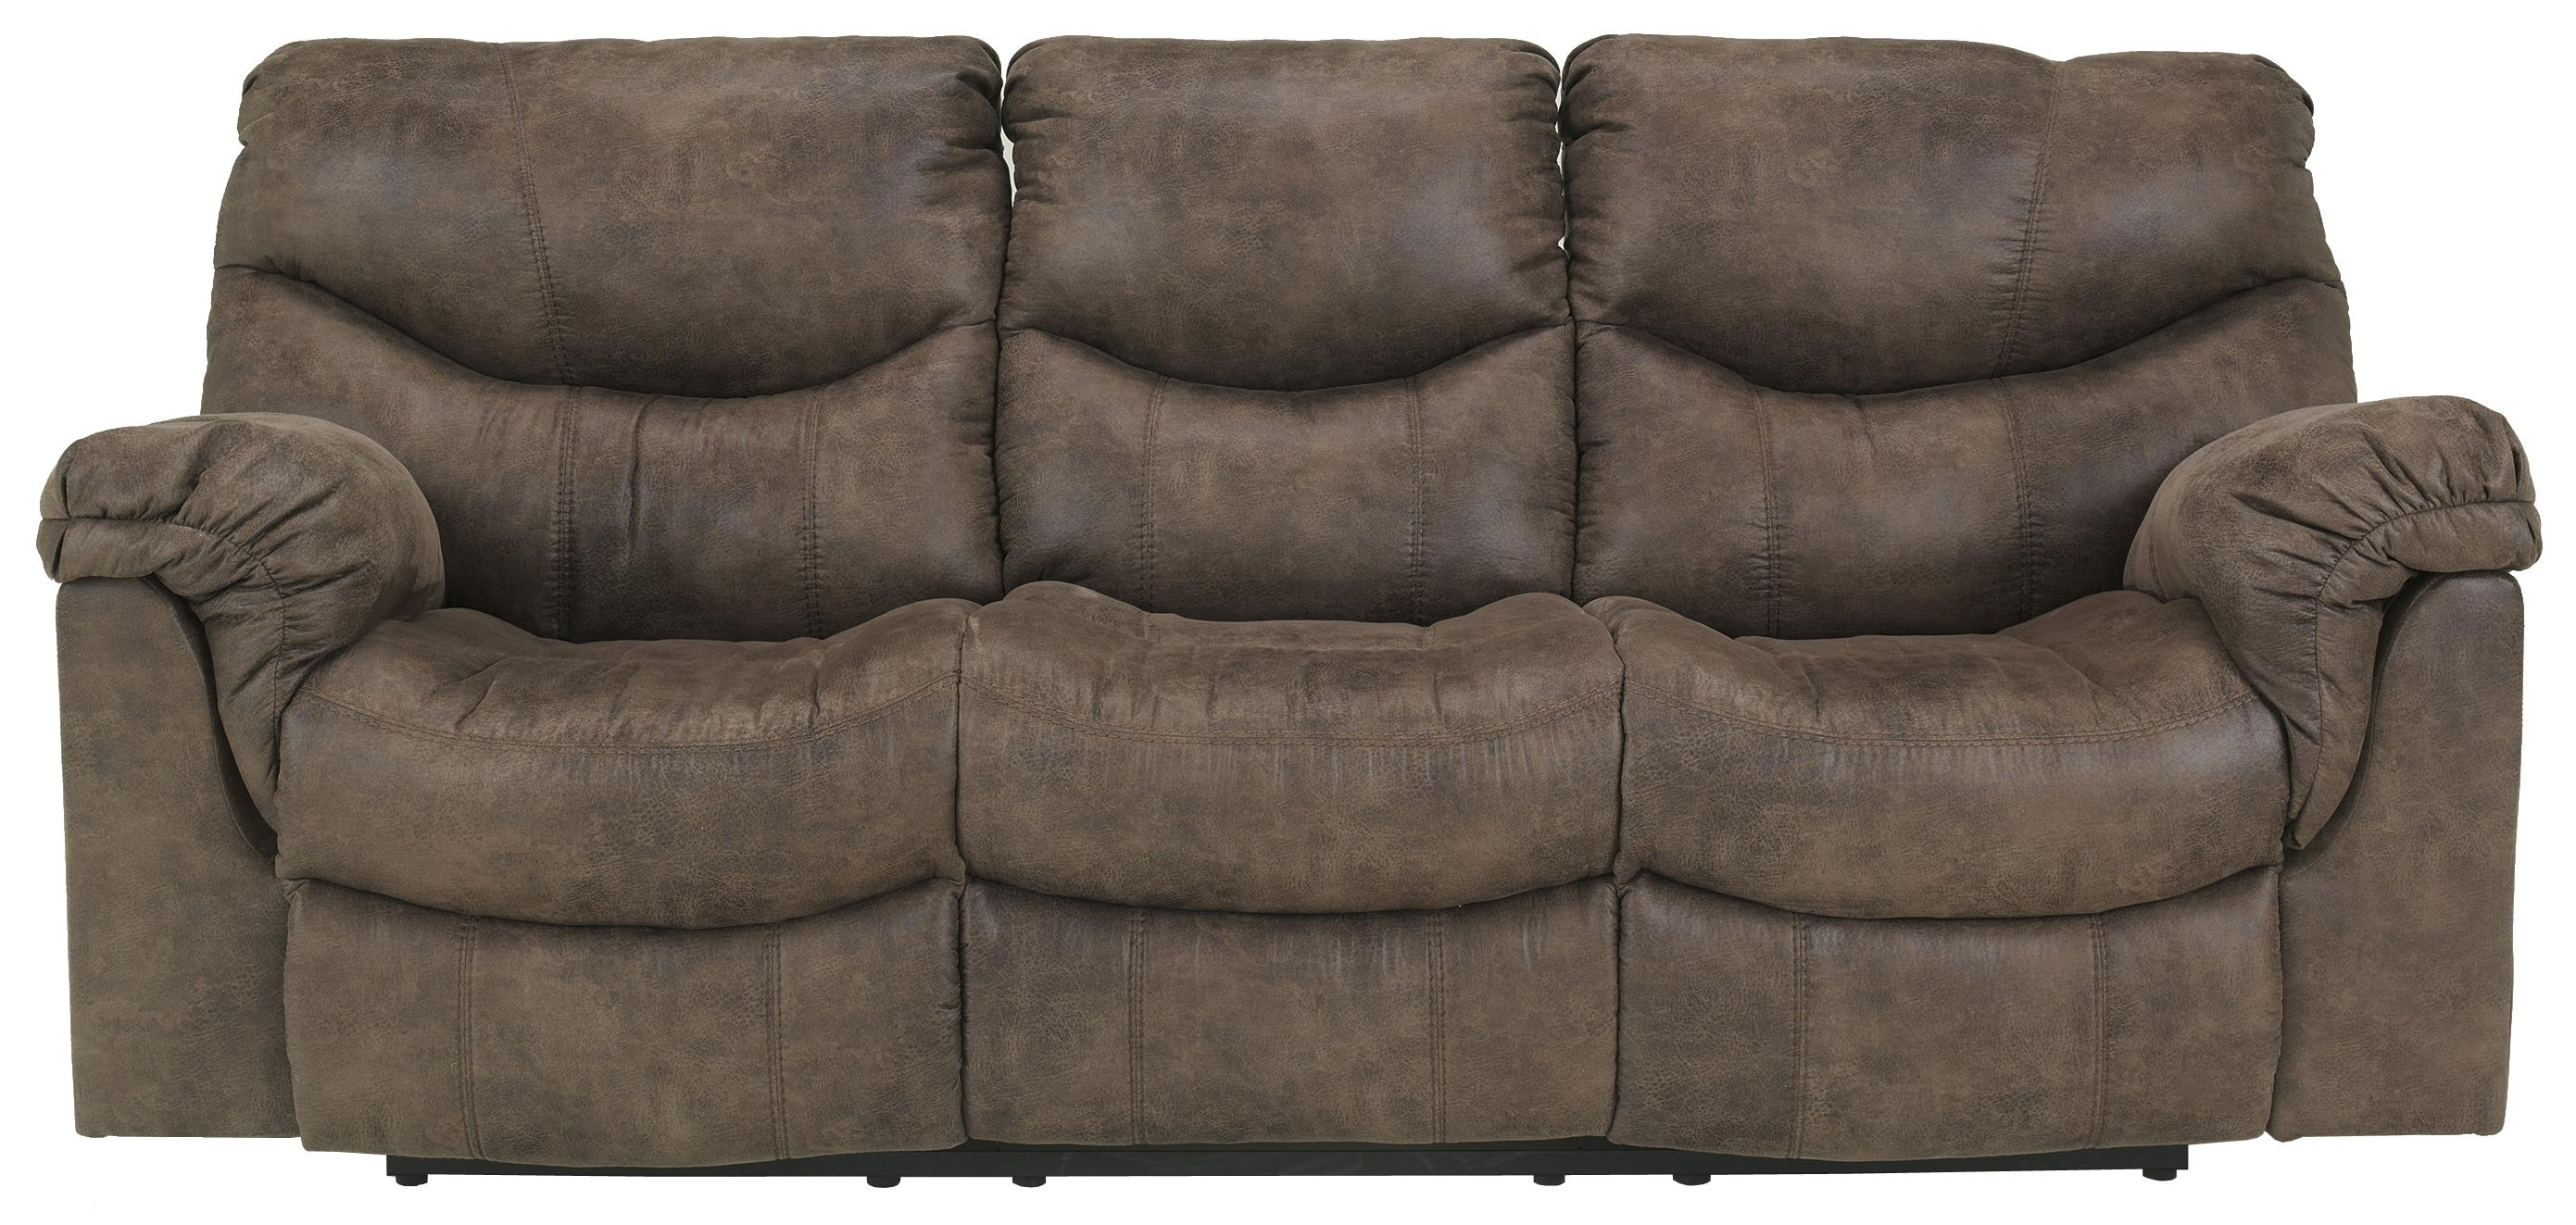 Alzena - Gunsmoke Reclining Sofa by Signature Design by Ashley at Simply Home by Lindy's